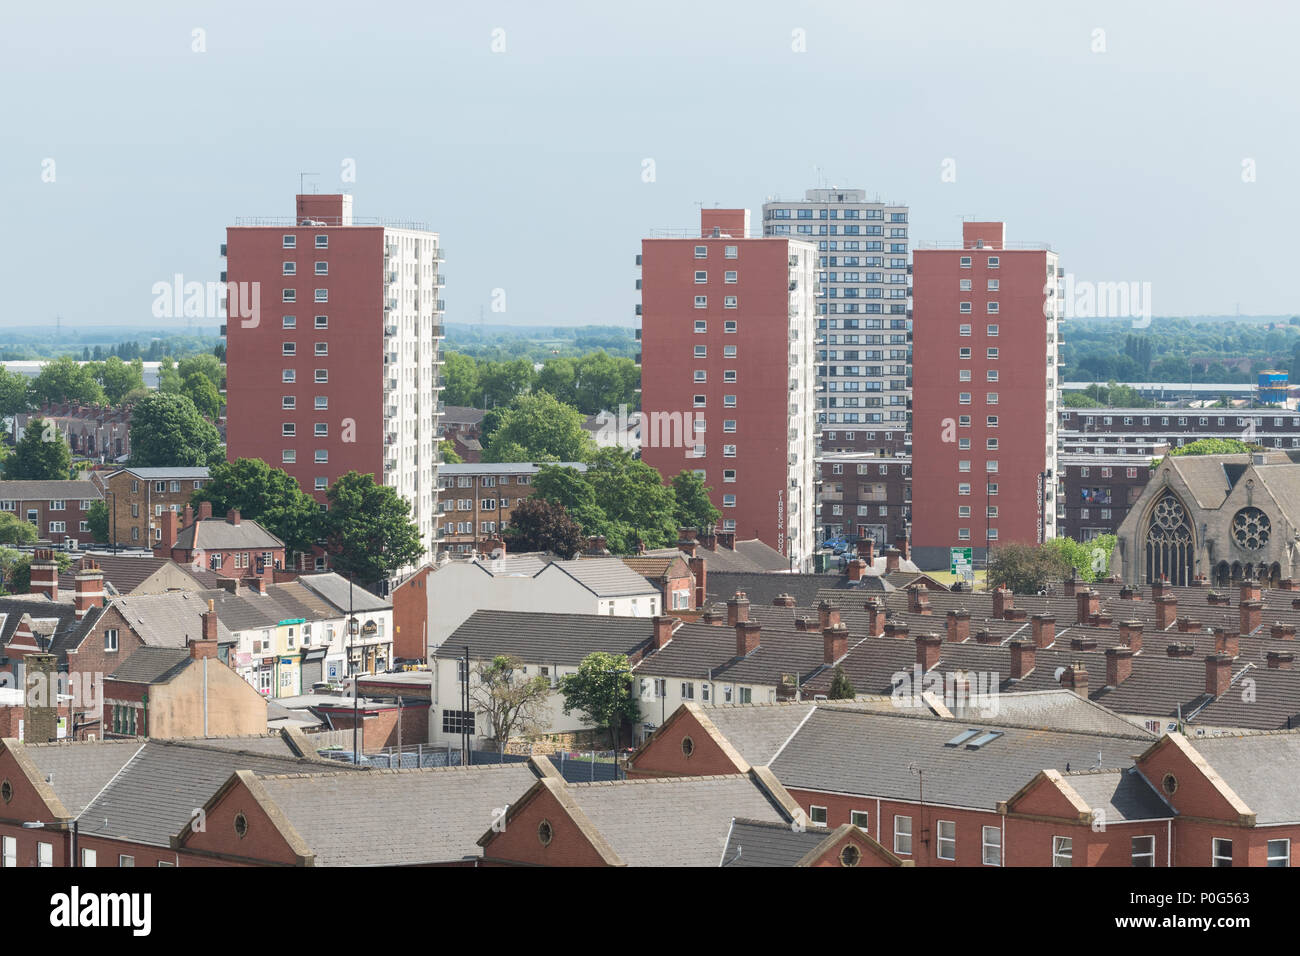 Doncaster housing - high rise tower blocks council housing and rows of traditional terrace houses - Stock Image